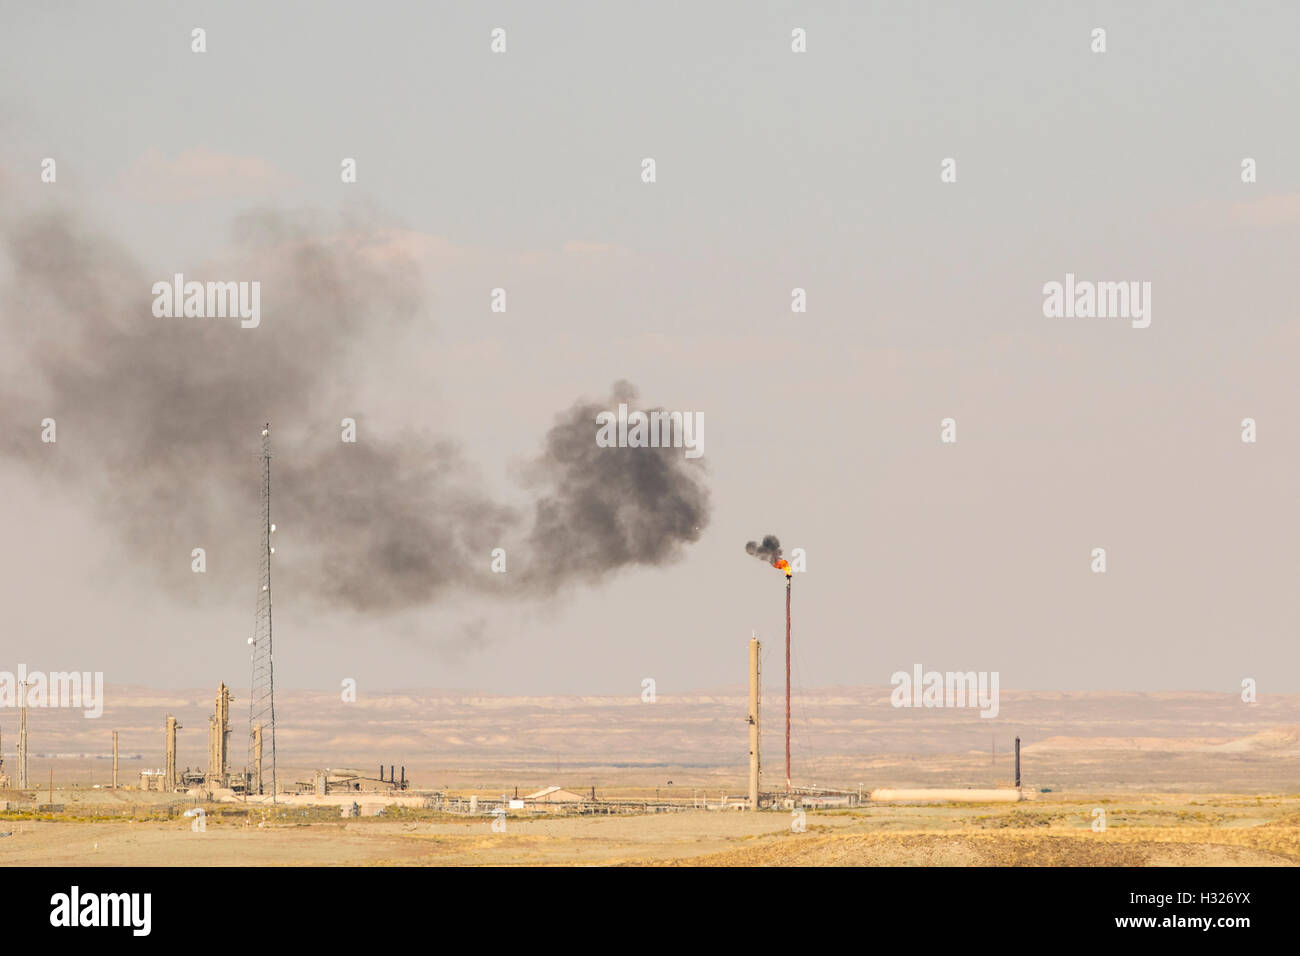 Climate change and global warming caused by air pollution from smoke stack. - Stock Image